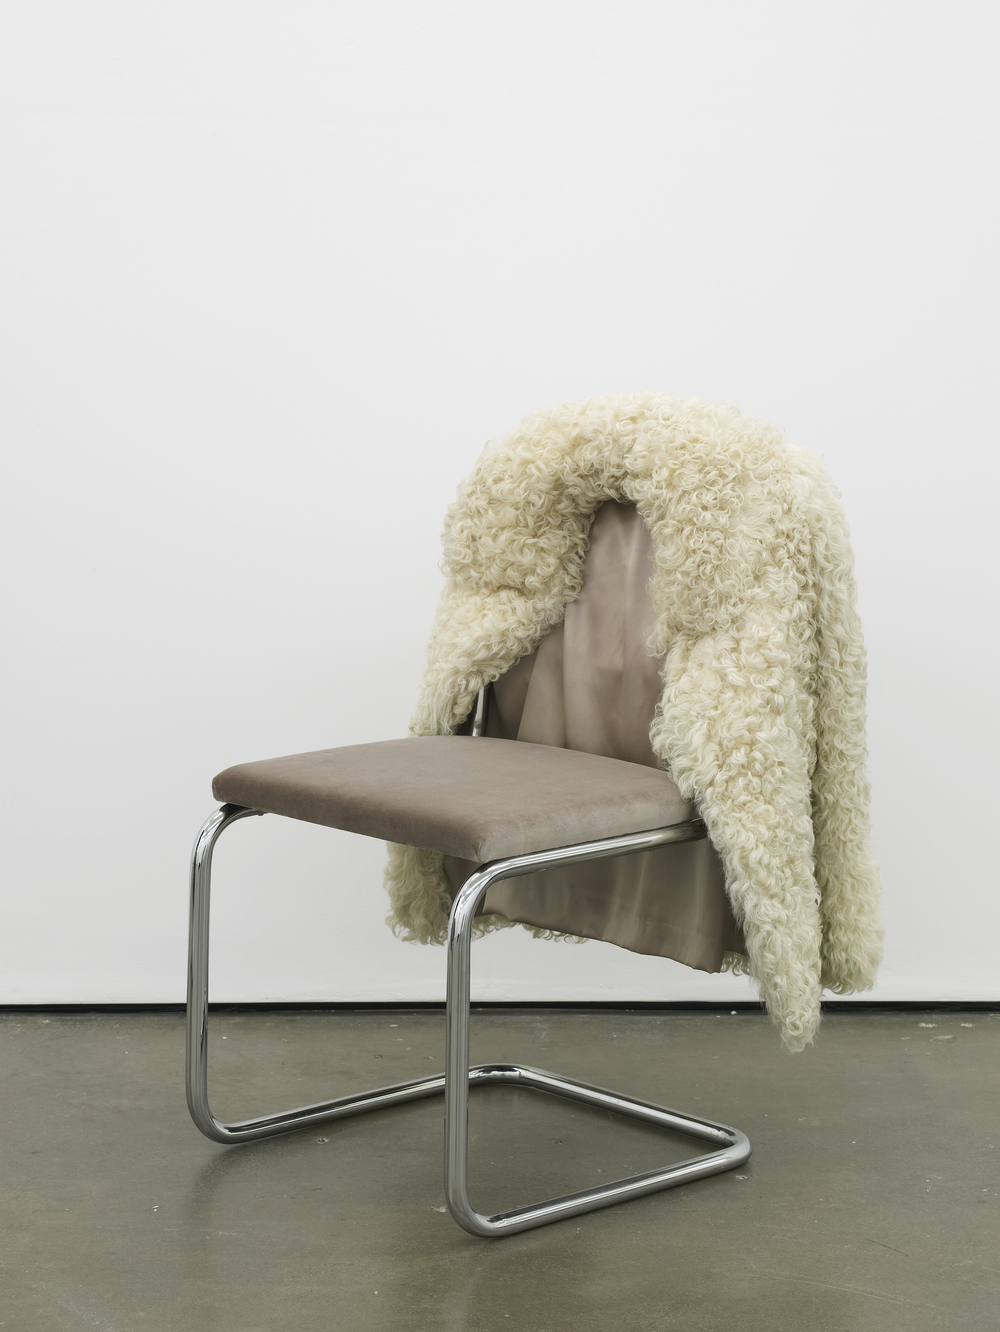 Untitled Chair - AL-0            2015 Vintage fur, steel tubing, upholstery, silk and velvet 85 x 65 x 60 cm / 33.4 x 25.5 x 23.6 in